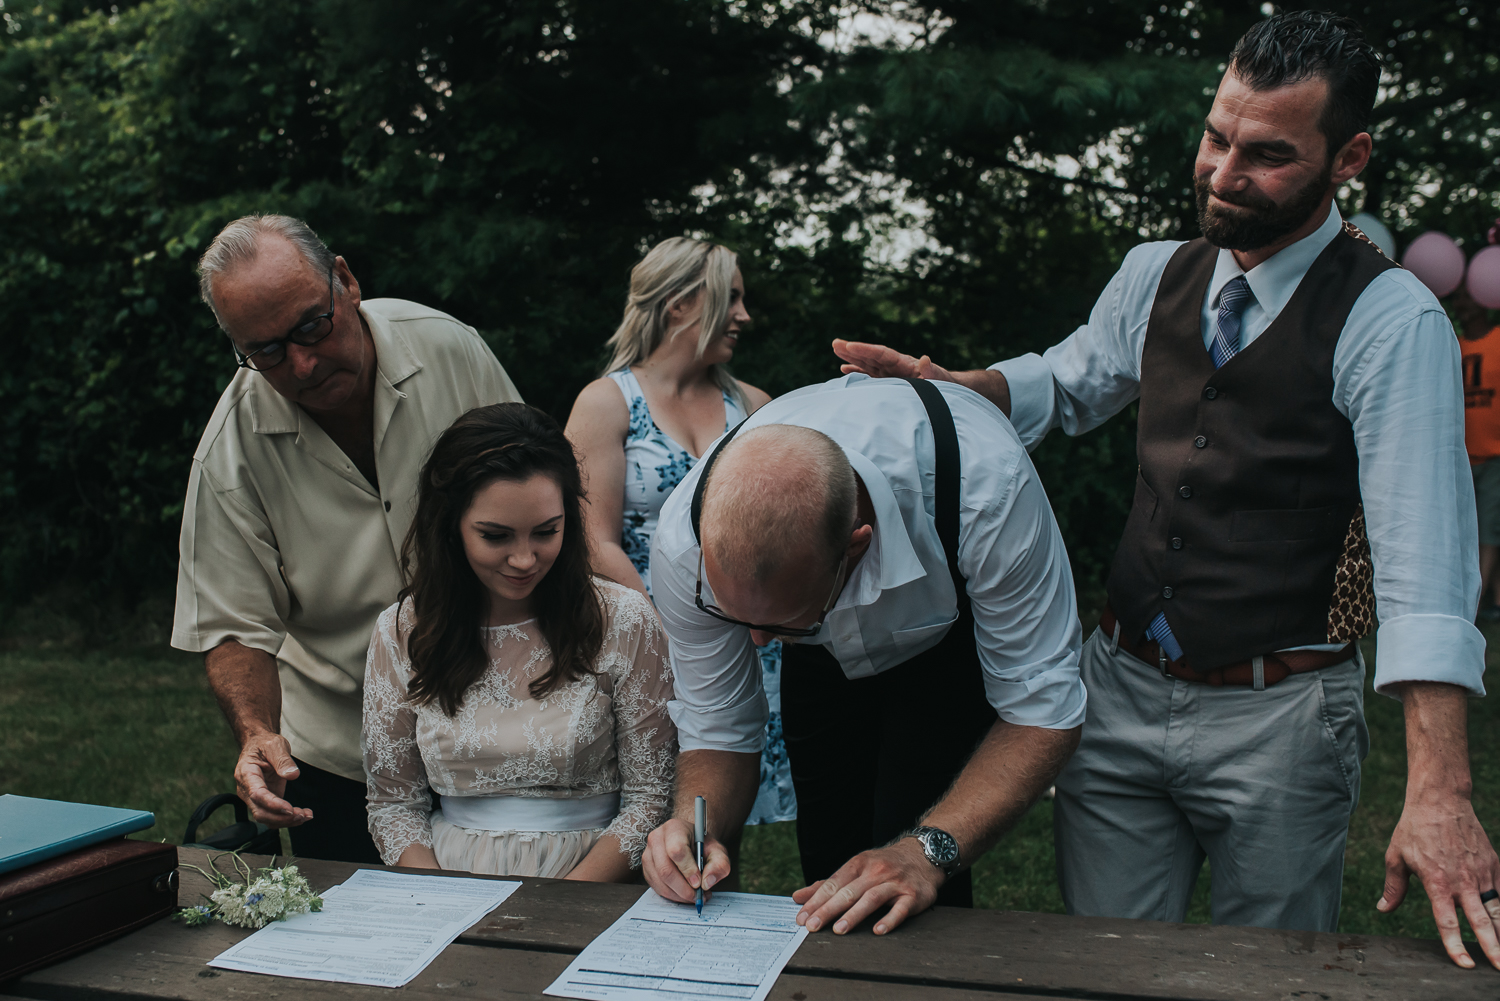 Bride and groom best man and bridesmaid sign the wedding registry licence on a picnic table